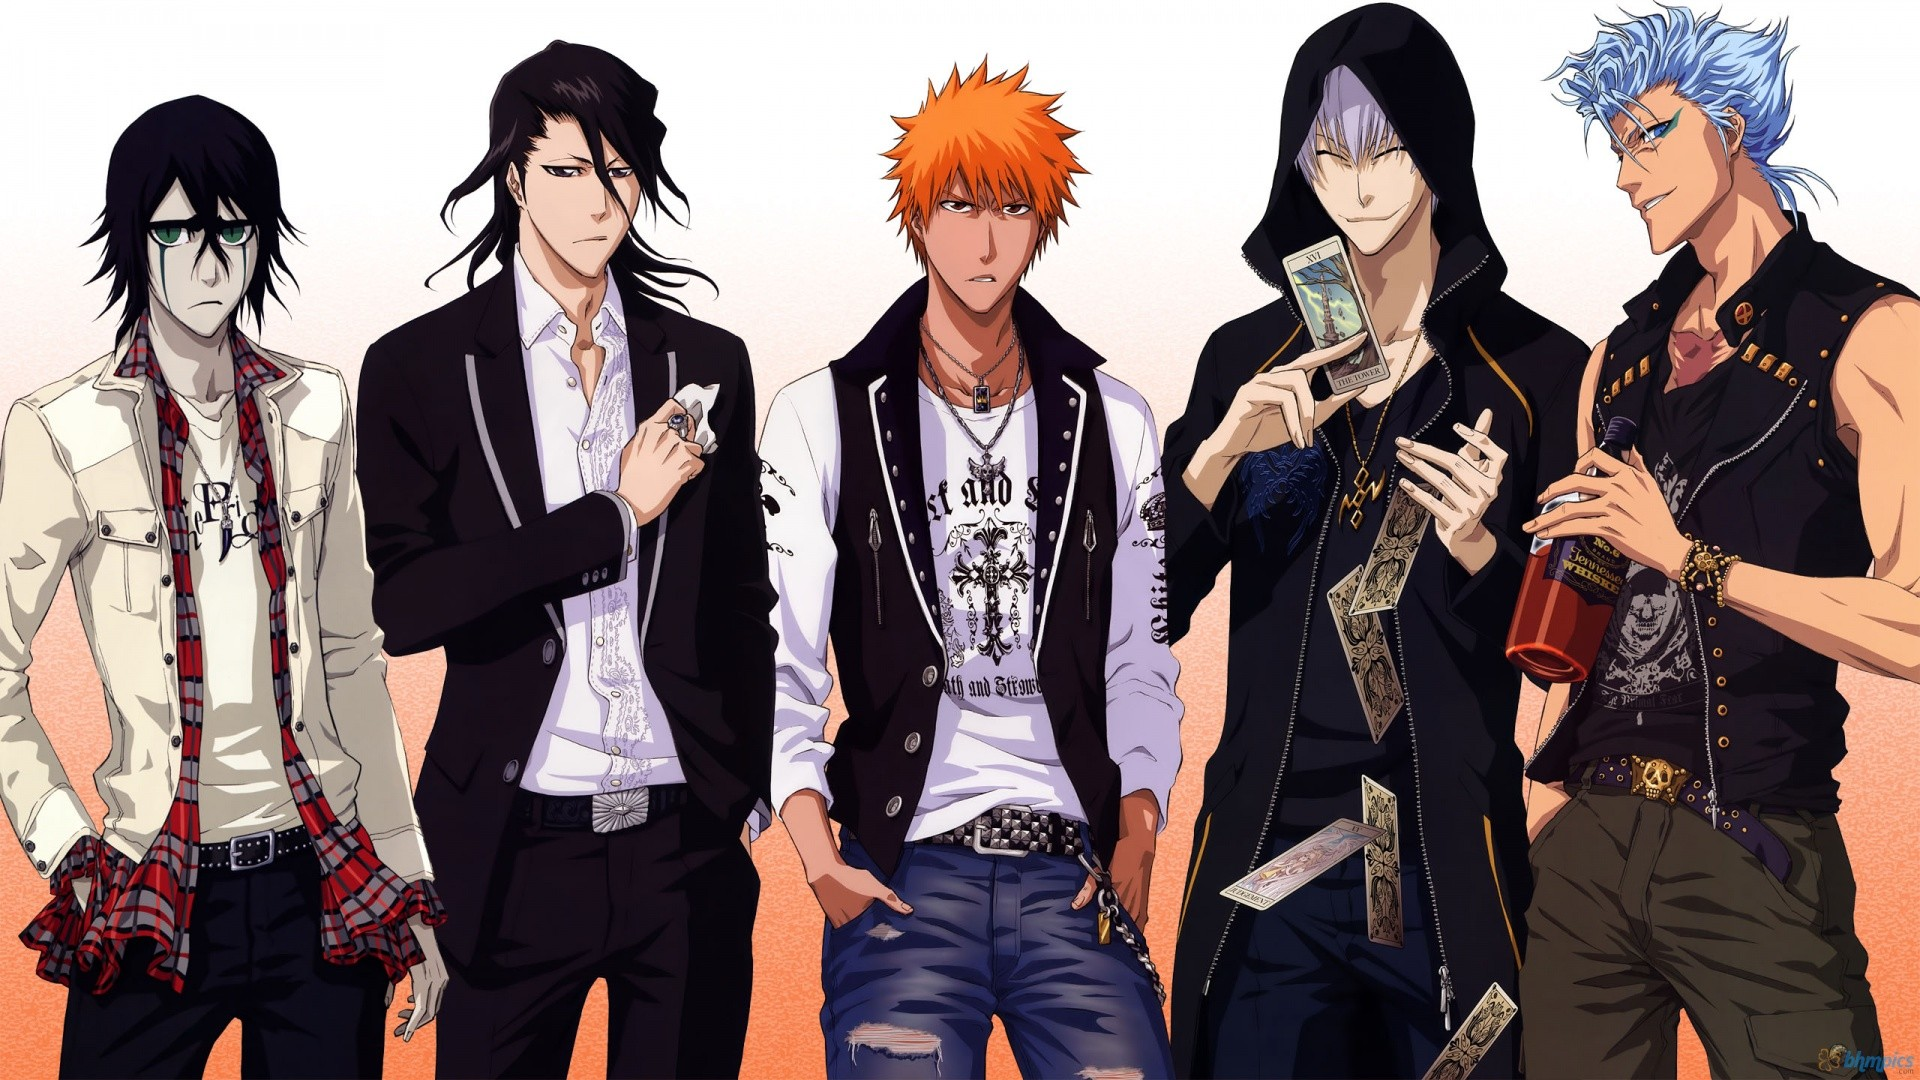 bleach wallpaper 1920 x 1080 - photo #33